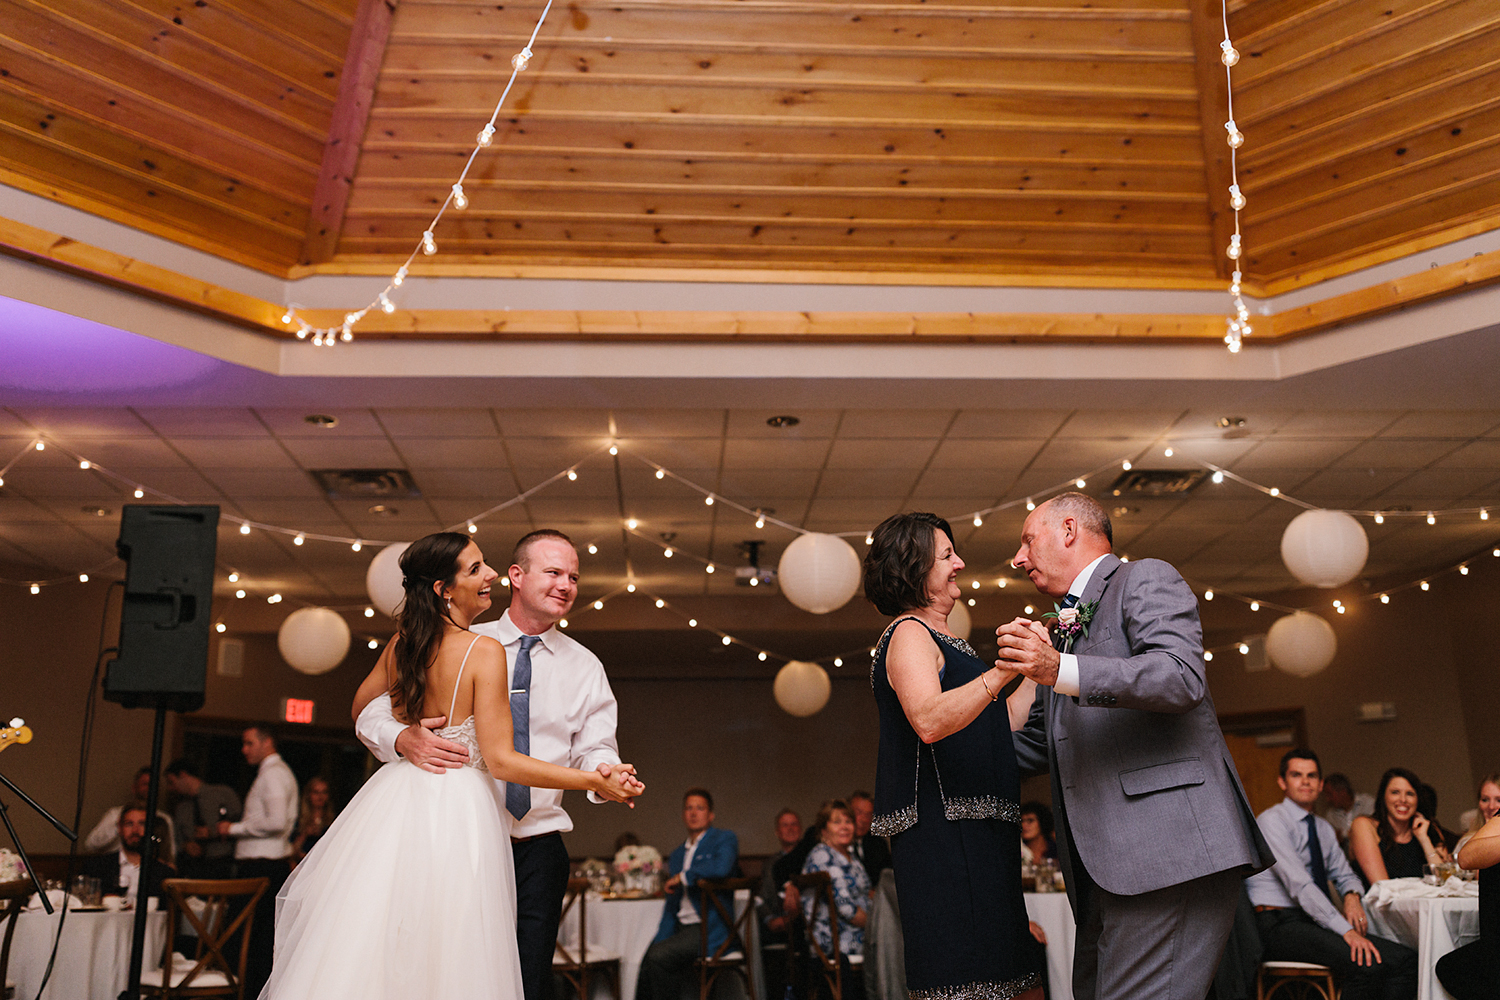 candid-mother-son-dance--father-daughter-together-reception-At-Eganridge-Resort-Venue-Muskoka-Ontario-Wedding-Photography-by-Ryanne-Hollies-Photography-Toronto-Documentary-Wedding-Photographer.jpg